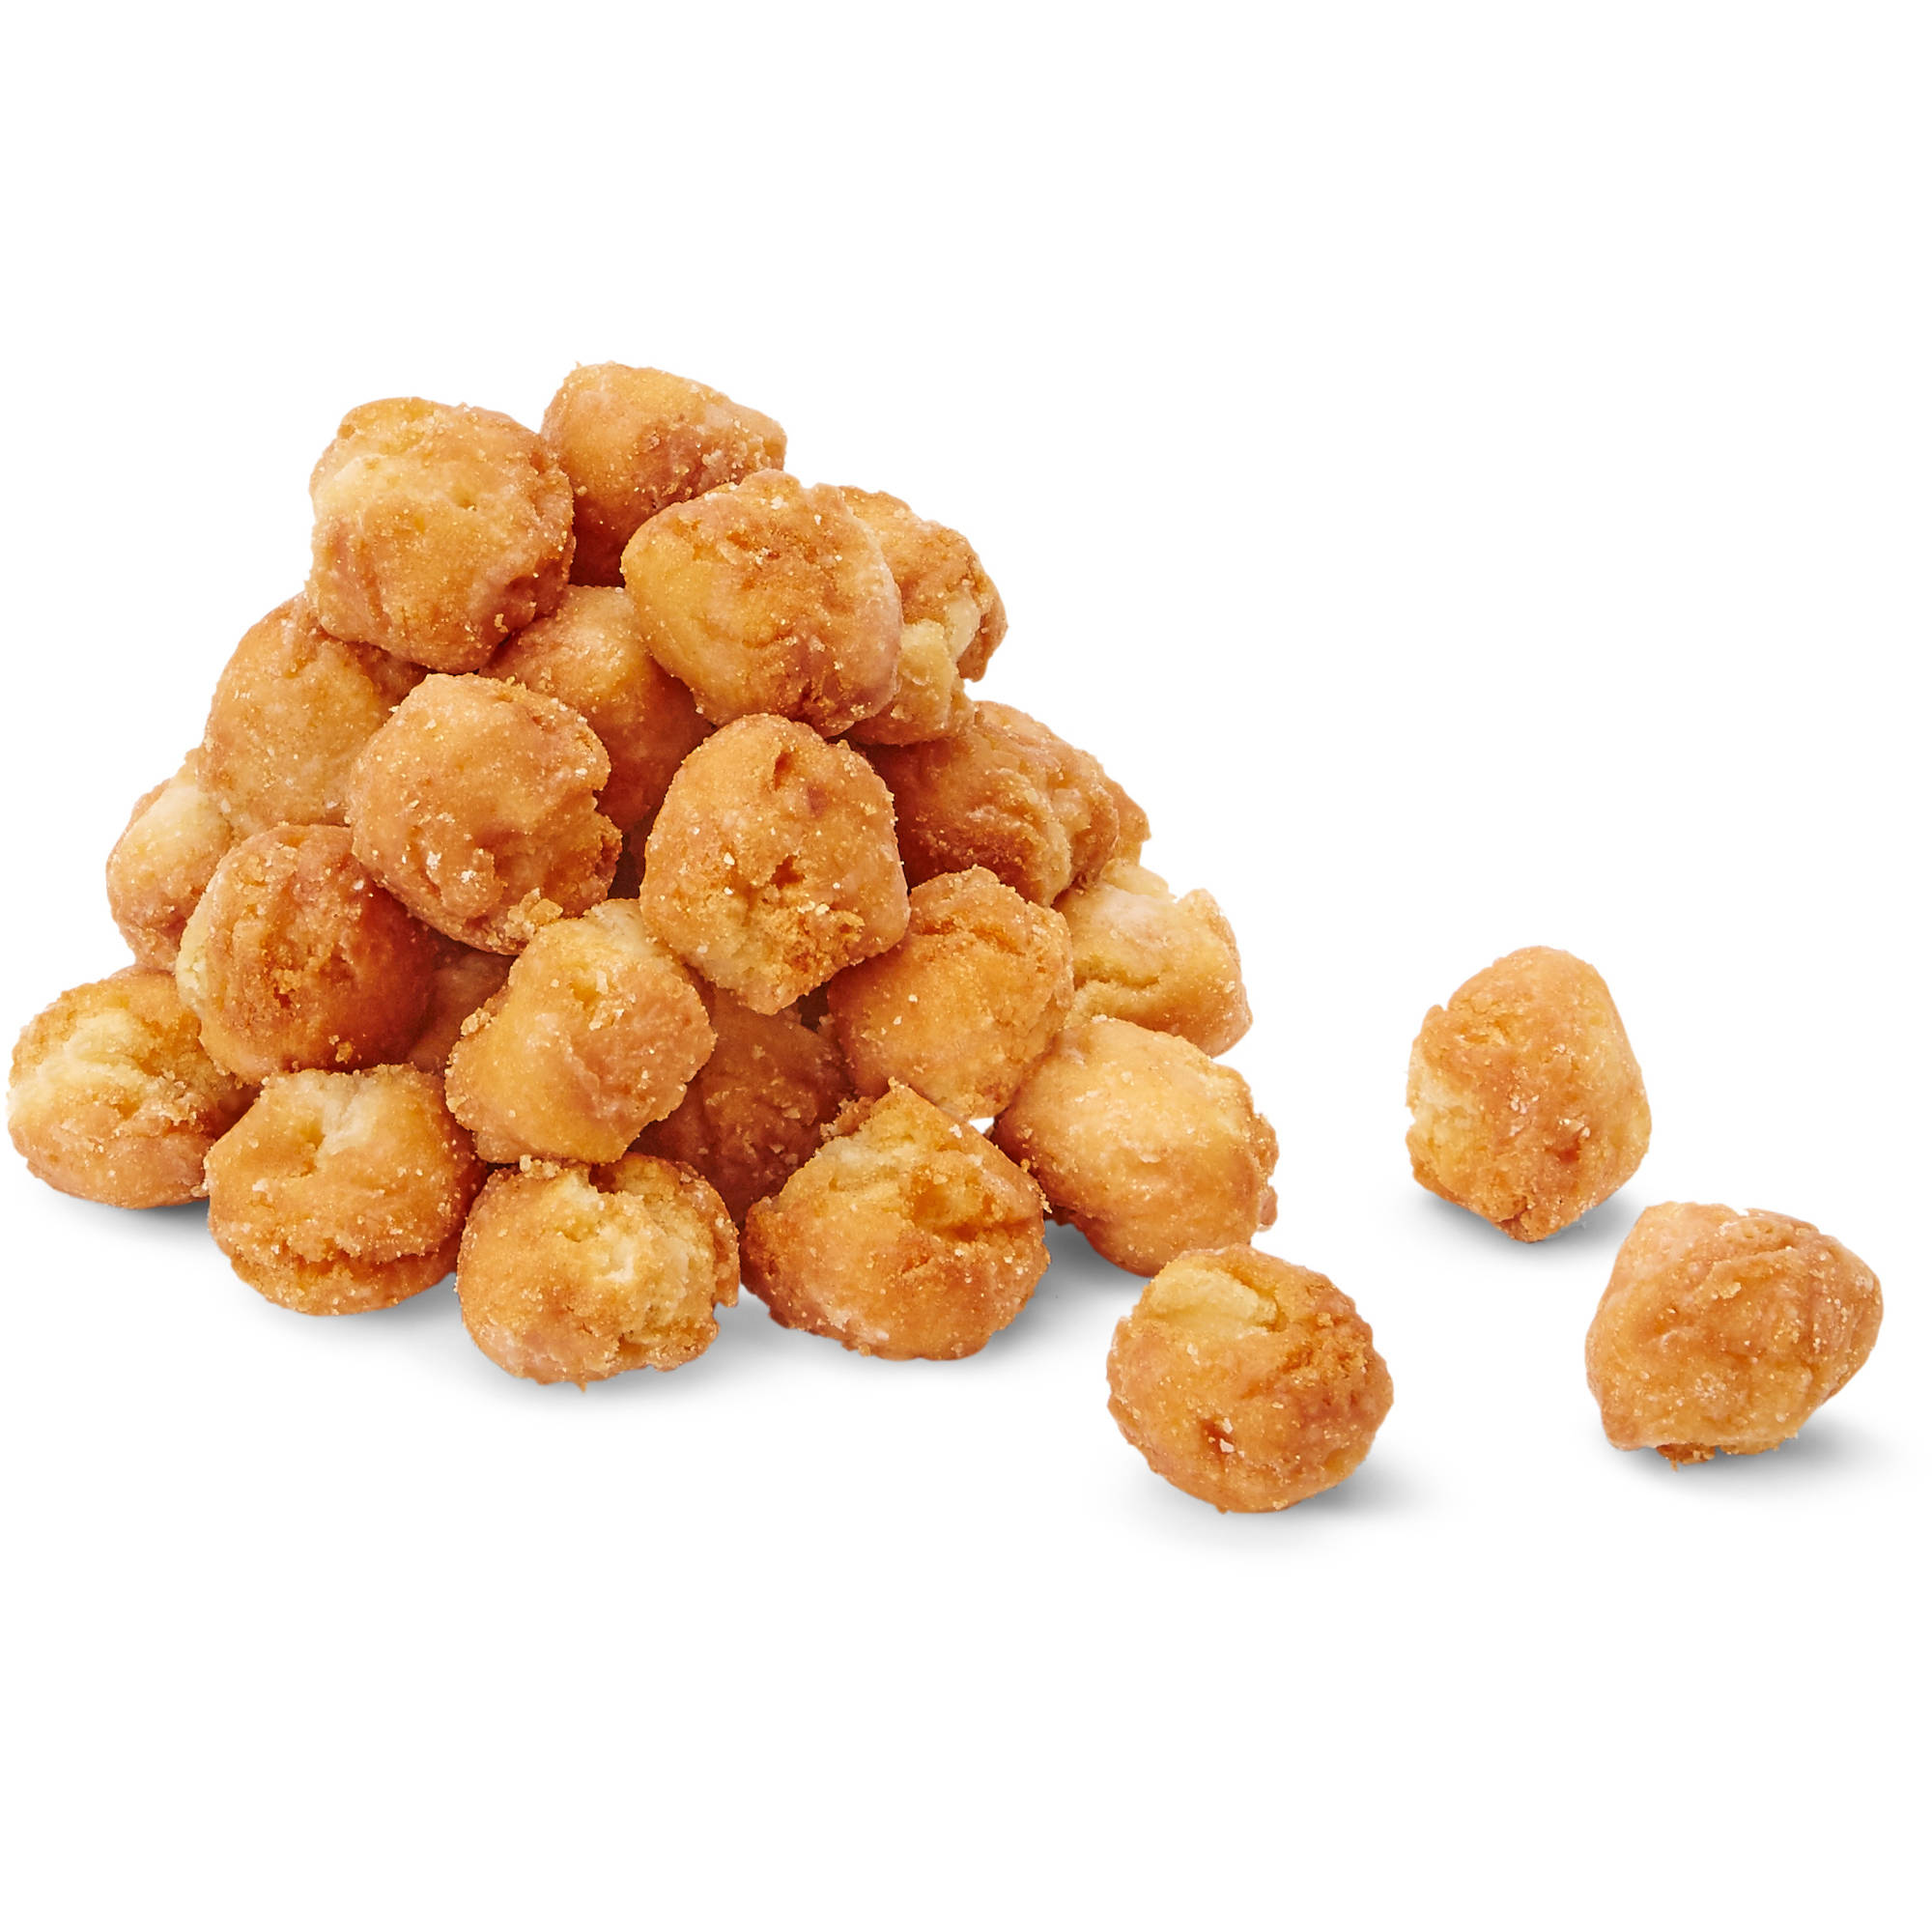 The Bakery Assorted Donut Holes, 14.5 oz